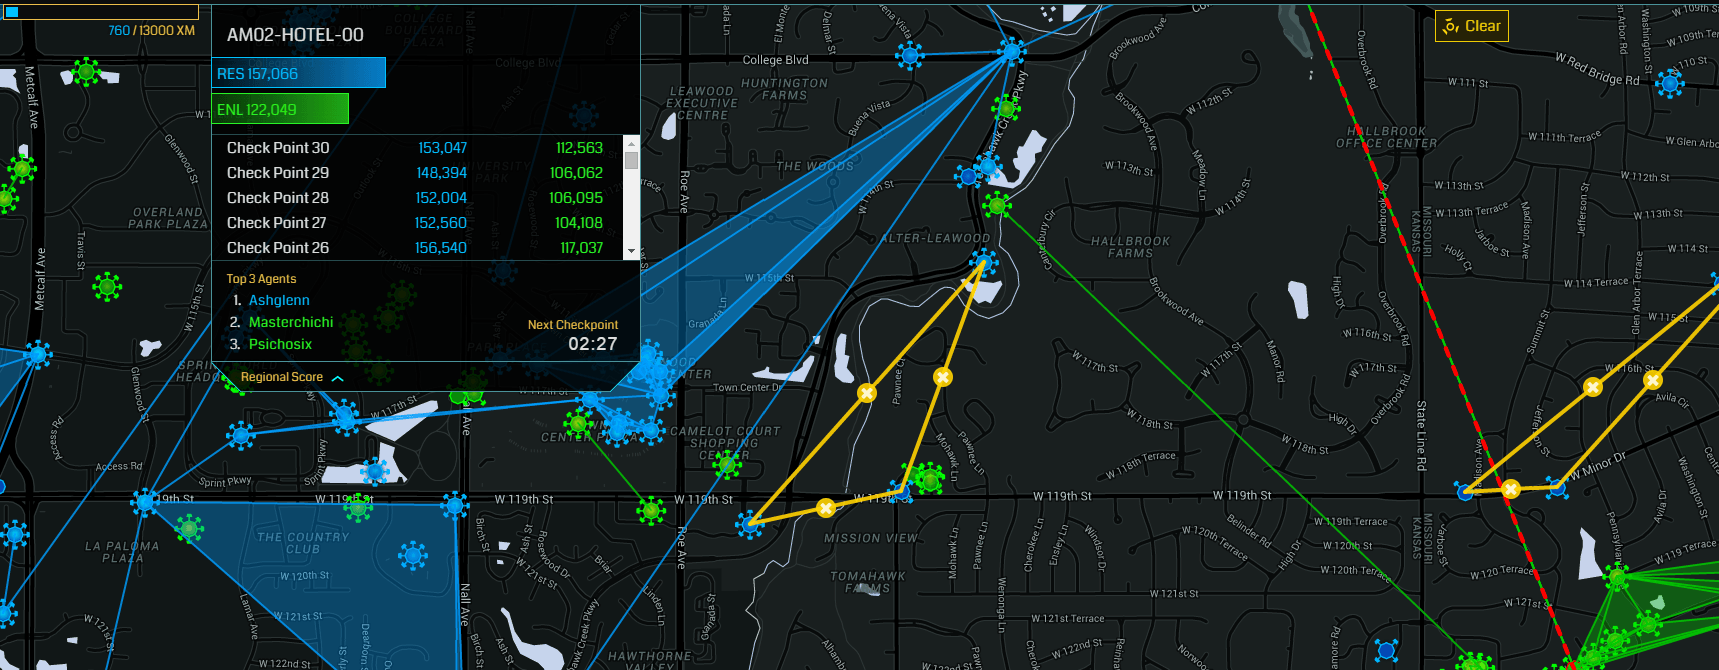 bg Intel Map Ingress on ingress real-time map, ingress romeoville map, ingress map of arizona, cheat ingress map, ingress map minnesota, ingress lewis university map,